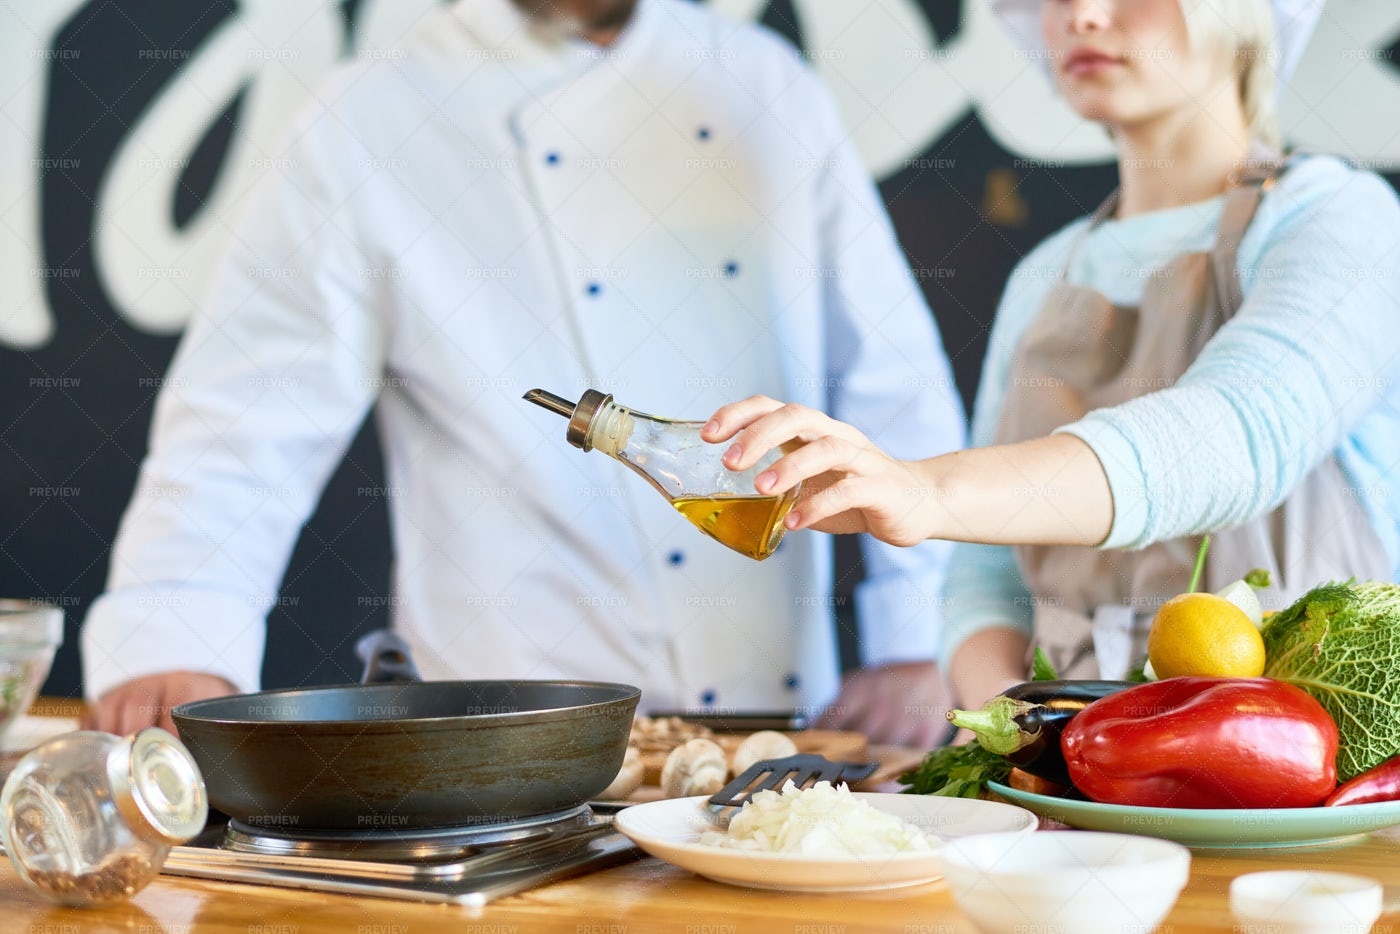 Two Cooks Adding Olive Oil To Dish...: Stock Photos